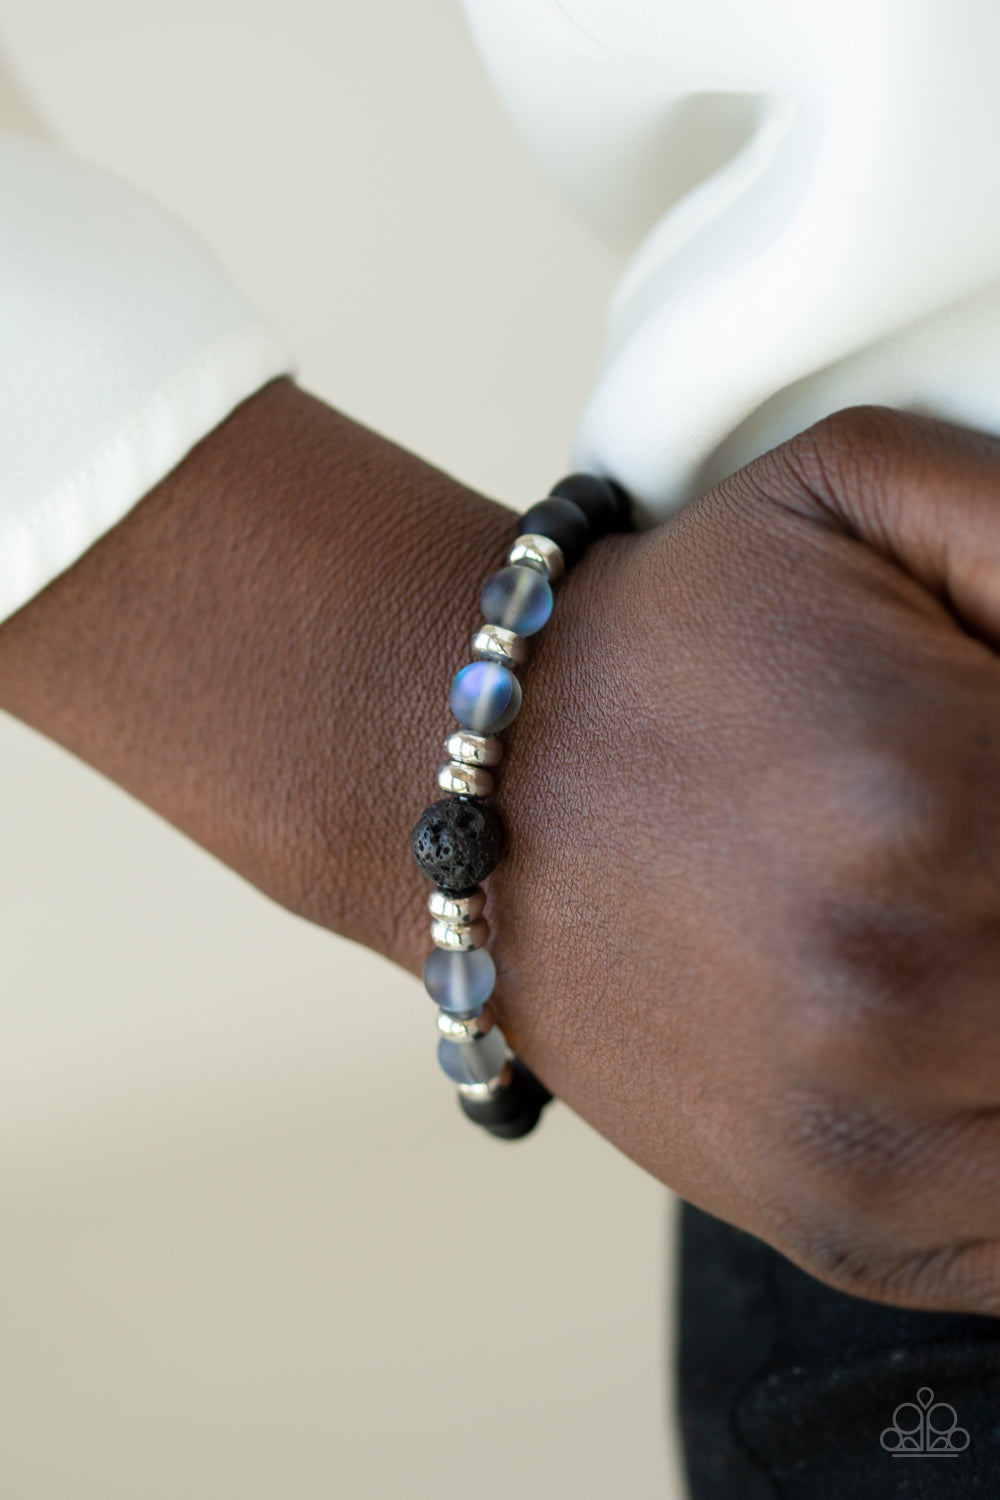 Grace - Black Lava Beads with Iridescent Blue Beads Bracelet